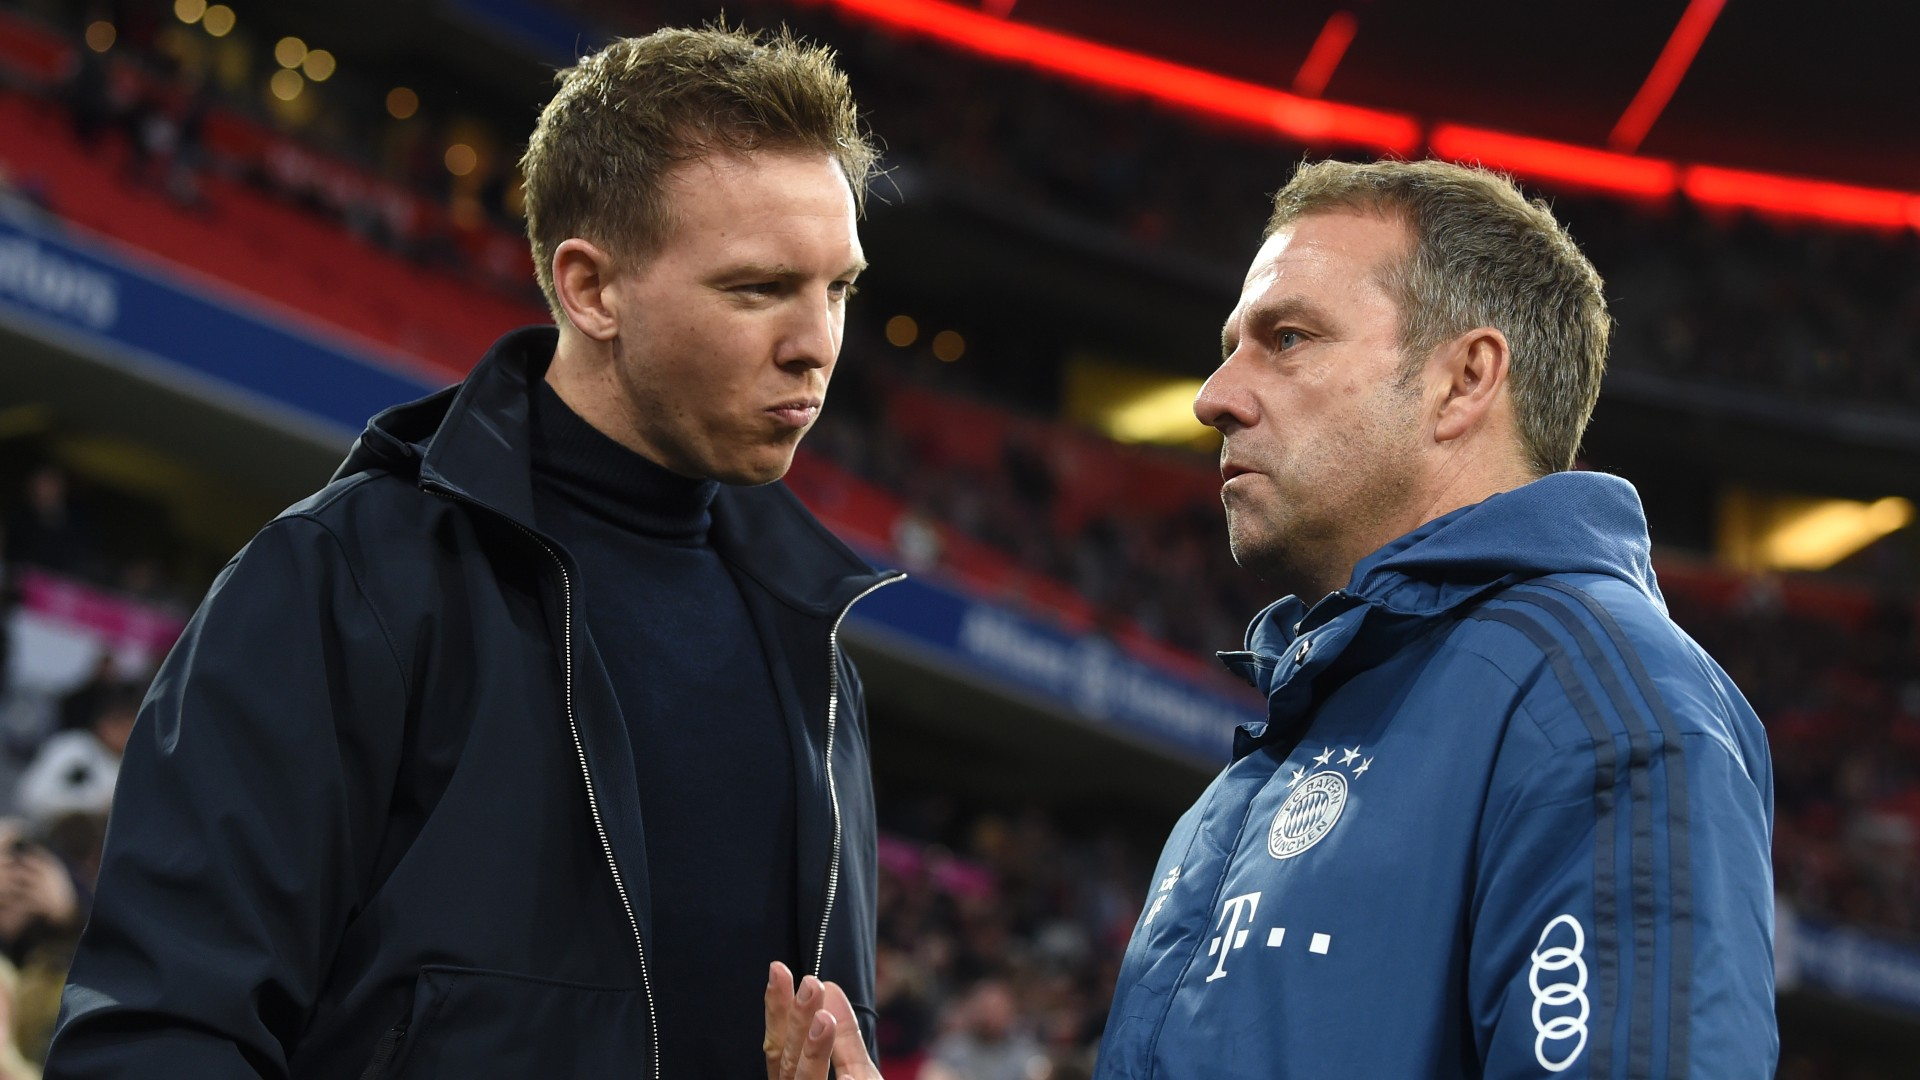 'I am very grateful' - Nagelsmann reveals 'valuable' chats with Bayern predecessor Flick